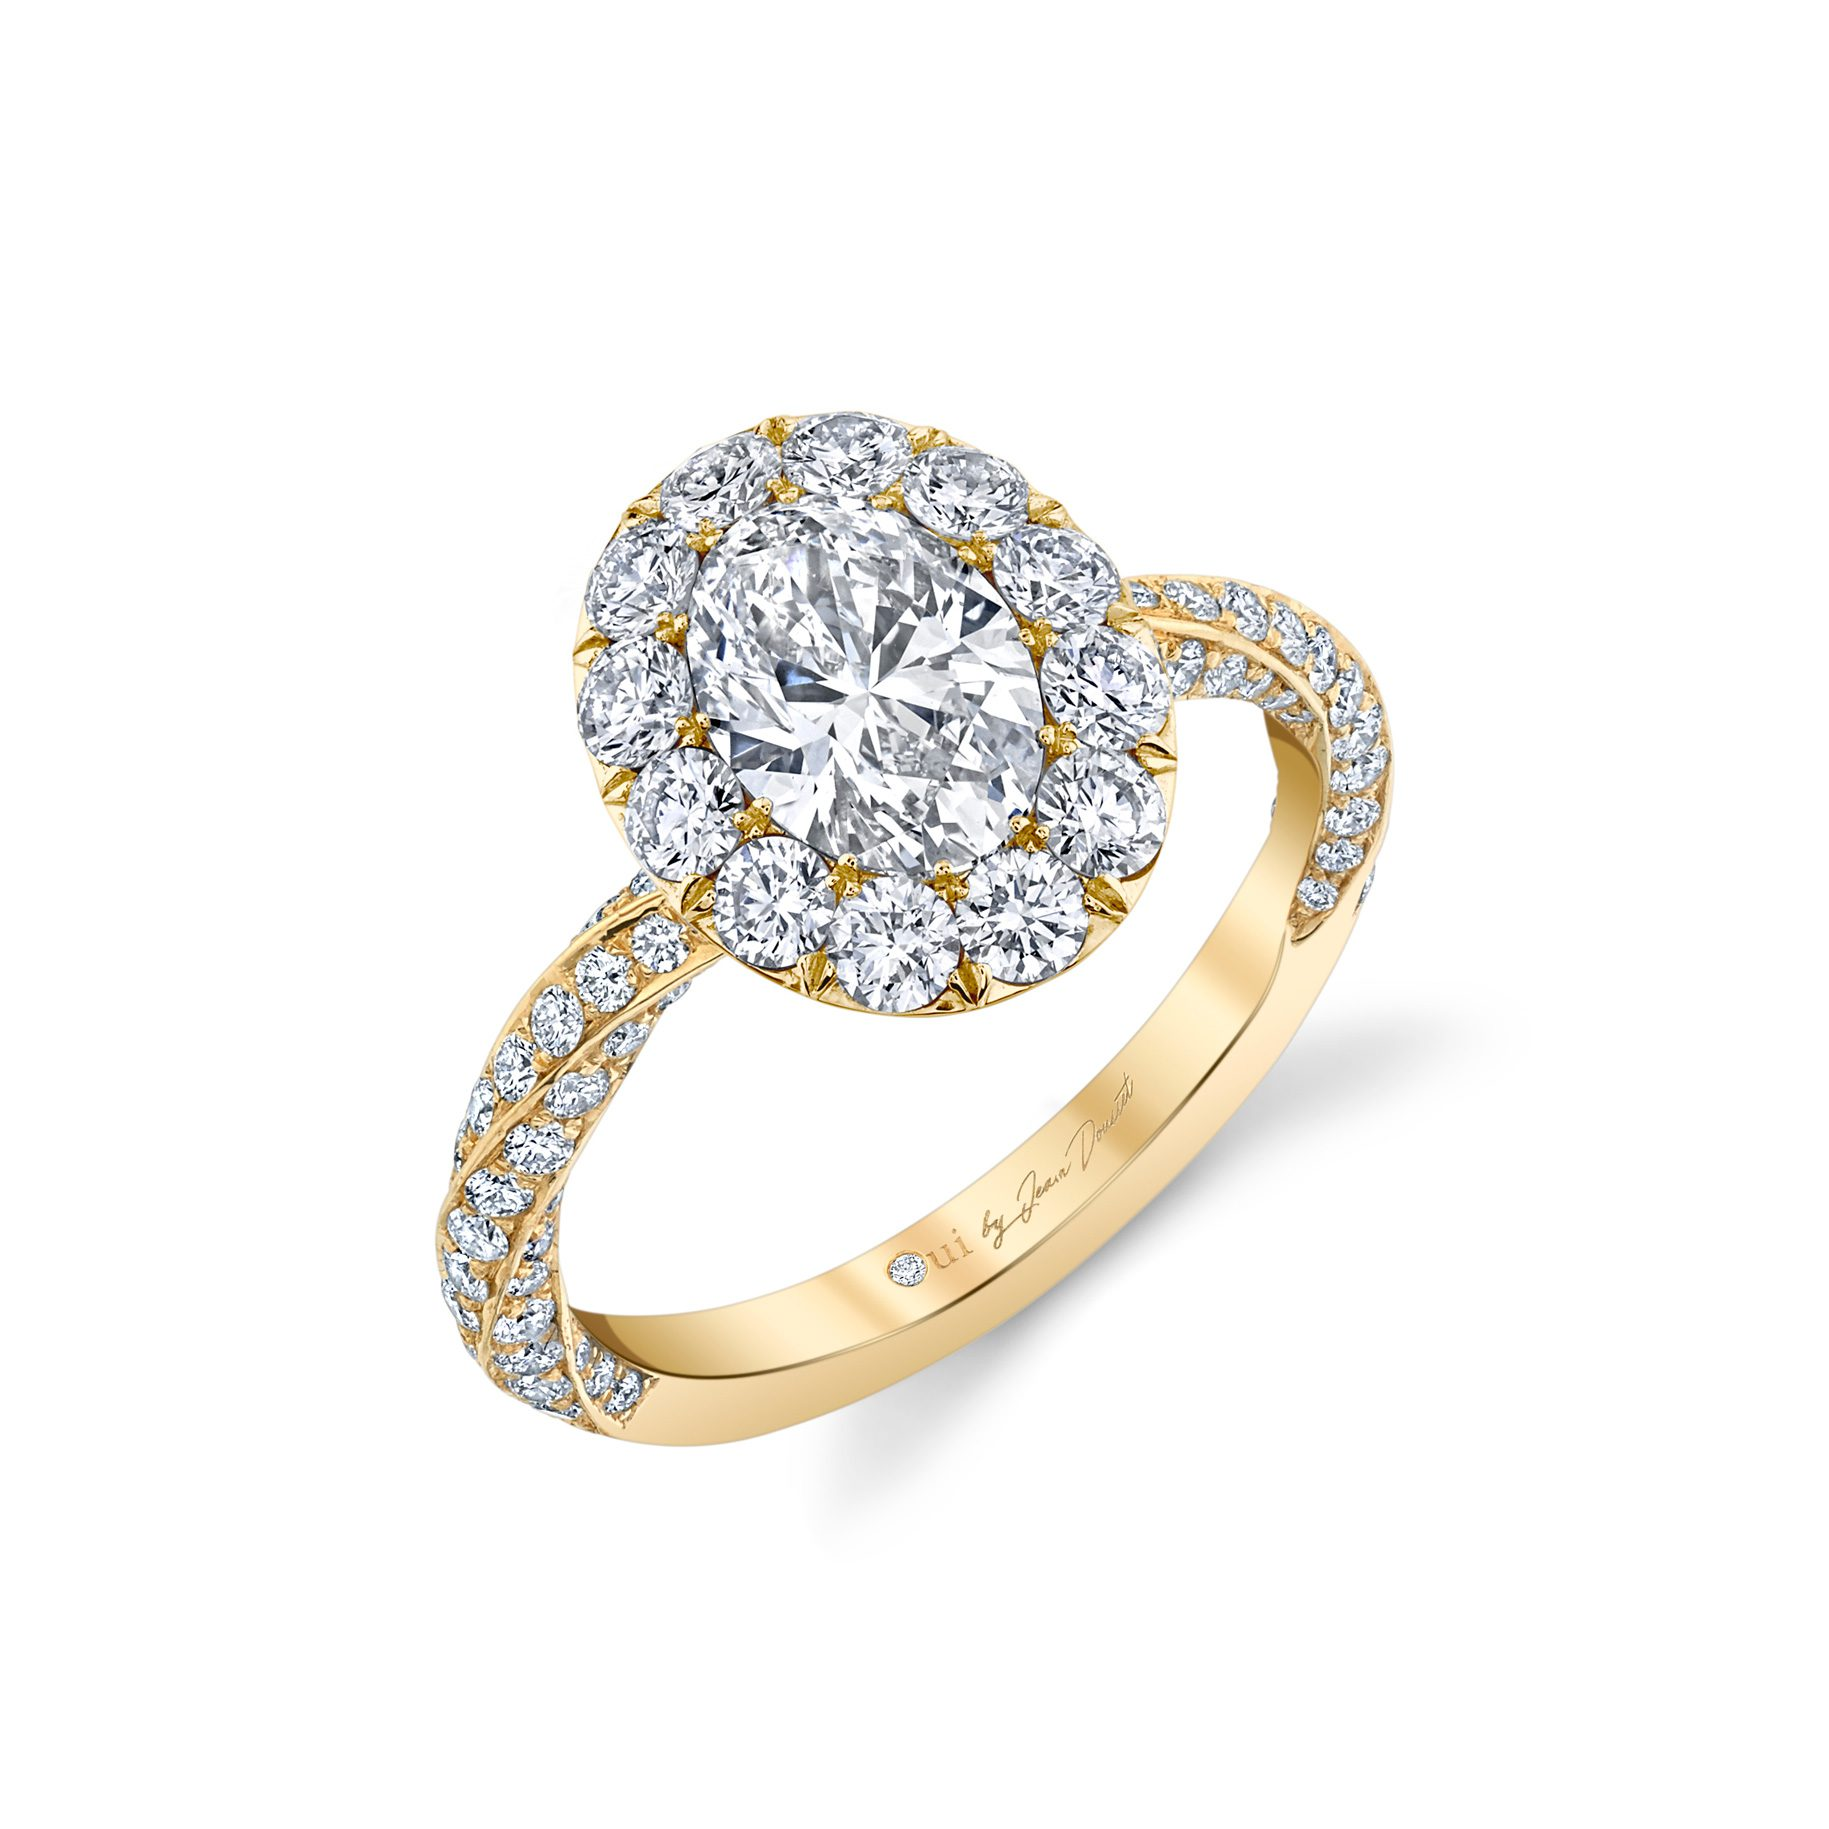 Camille Floating Oval Seamless Solitaire® Engagement Ring with diamond pavé in 18k Yellow Gold Profile View by Oui by Jean Dousset